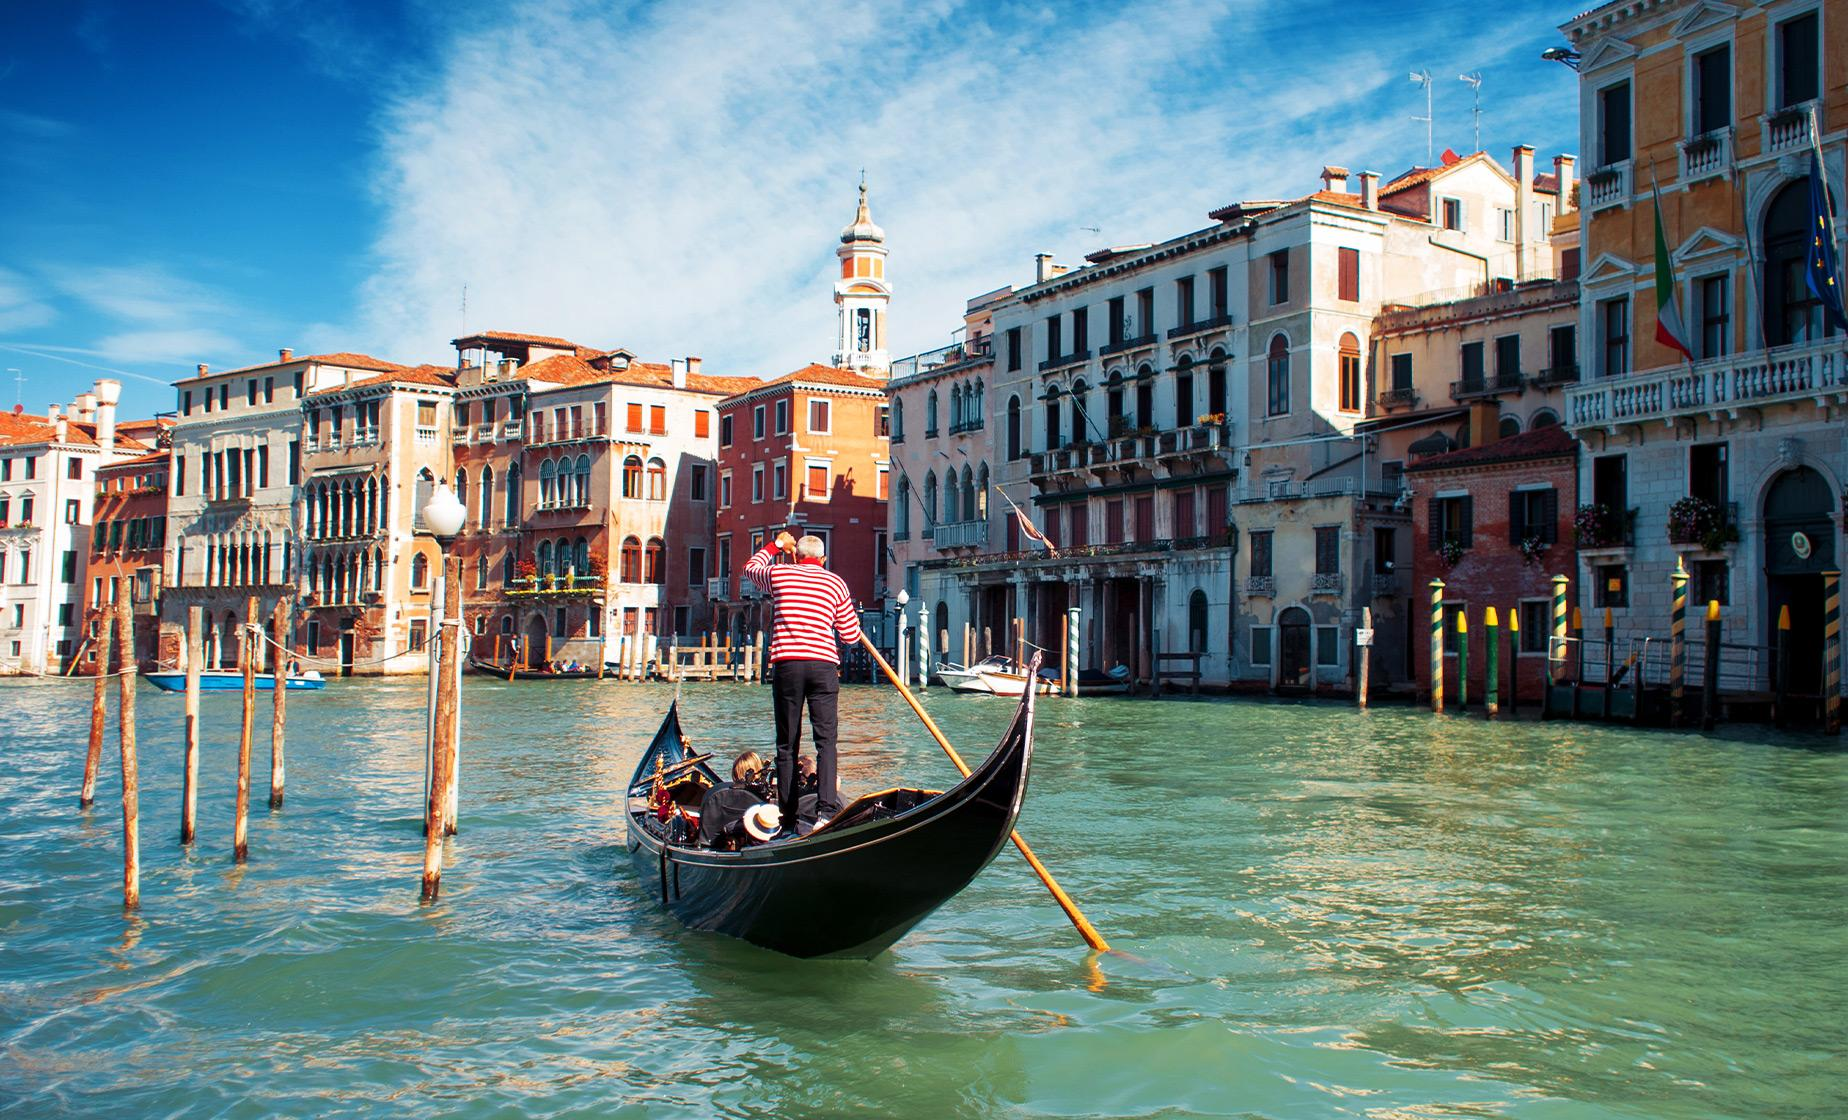 Hidden Gems of Venice Walking Tour, Rialto Bridge and Gondola